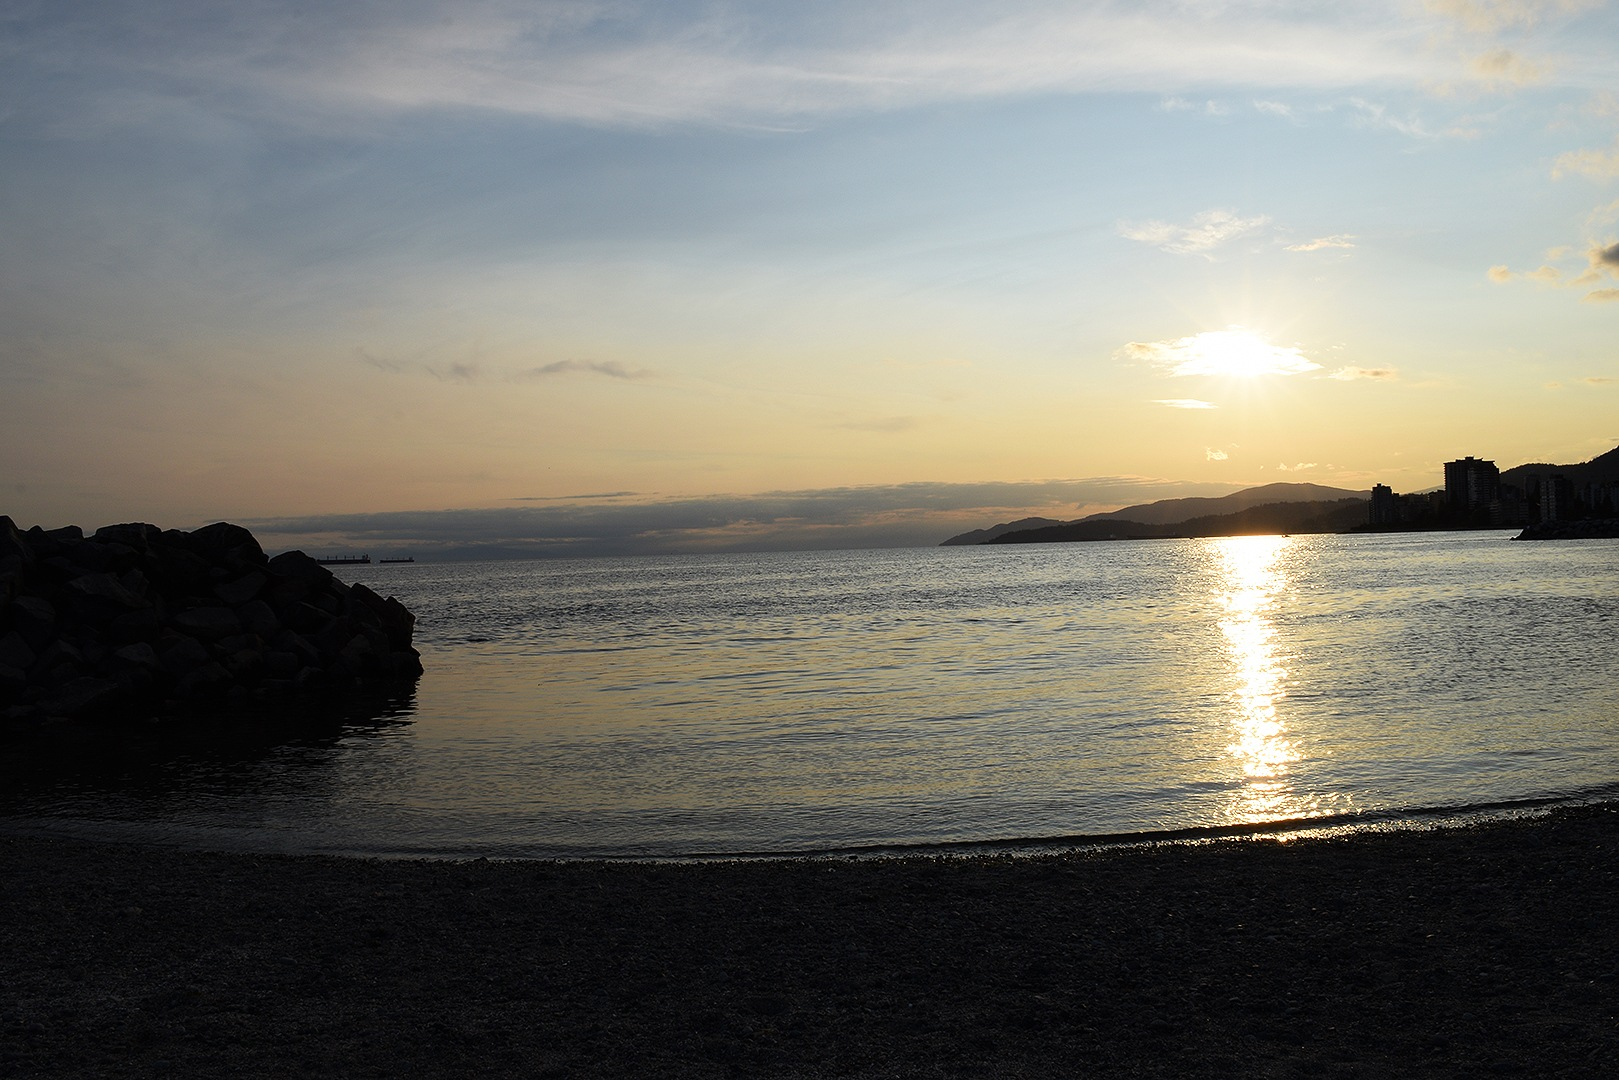 Sunset on the Ambleside beach, West Vancouver, BC Canada by #gregozphotos